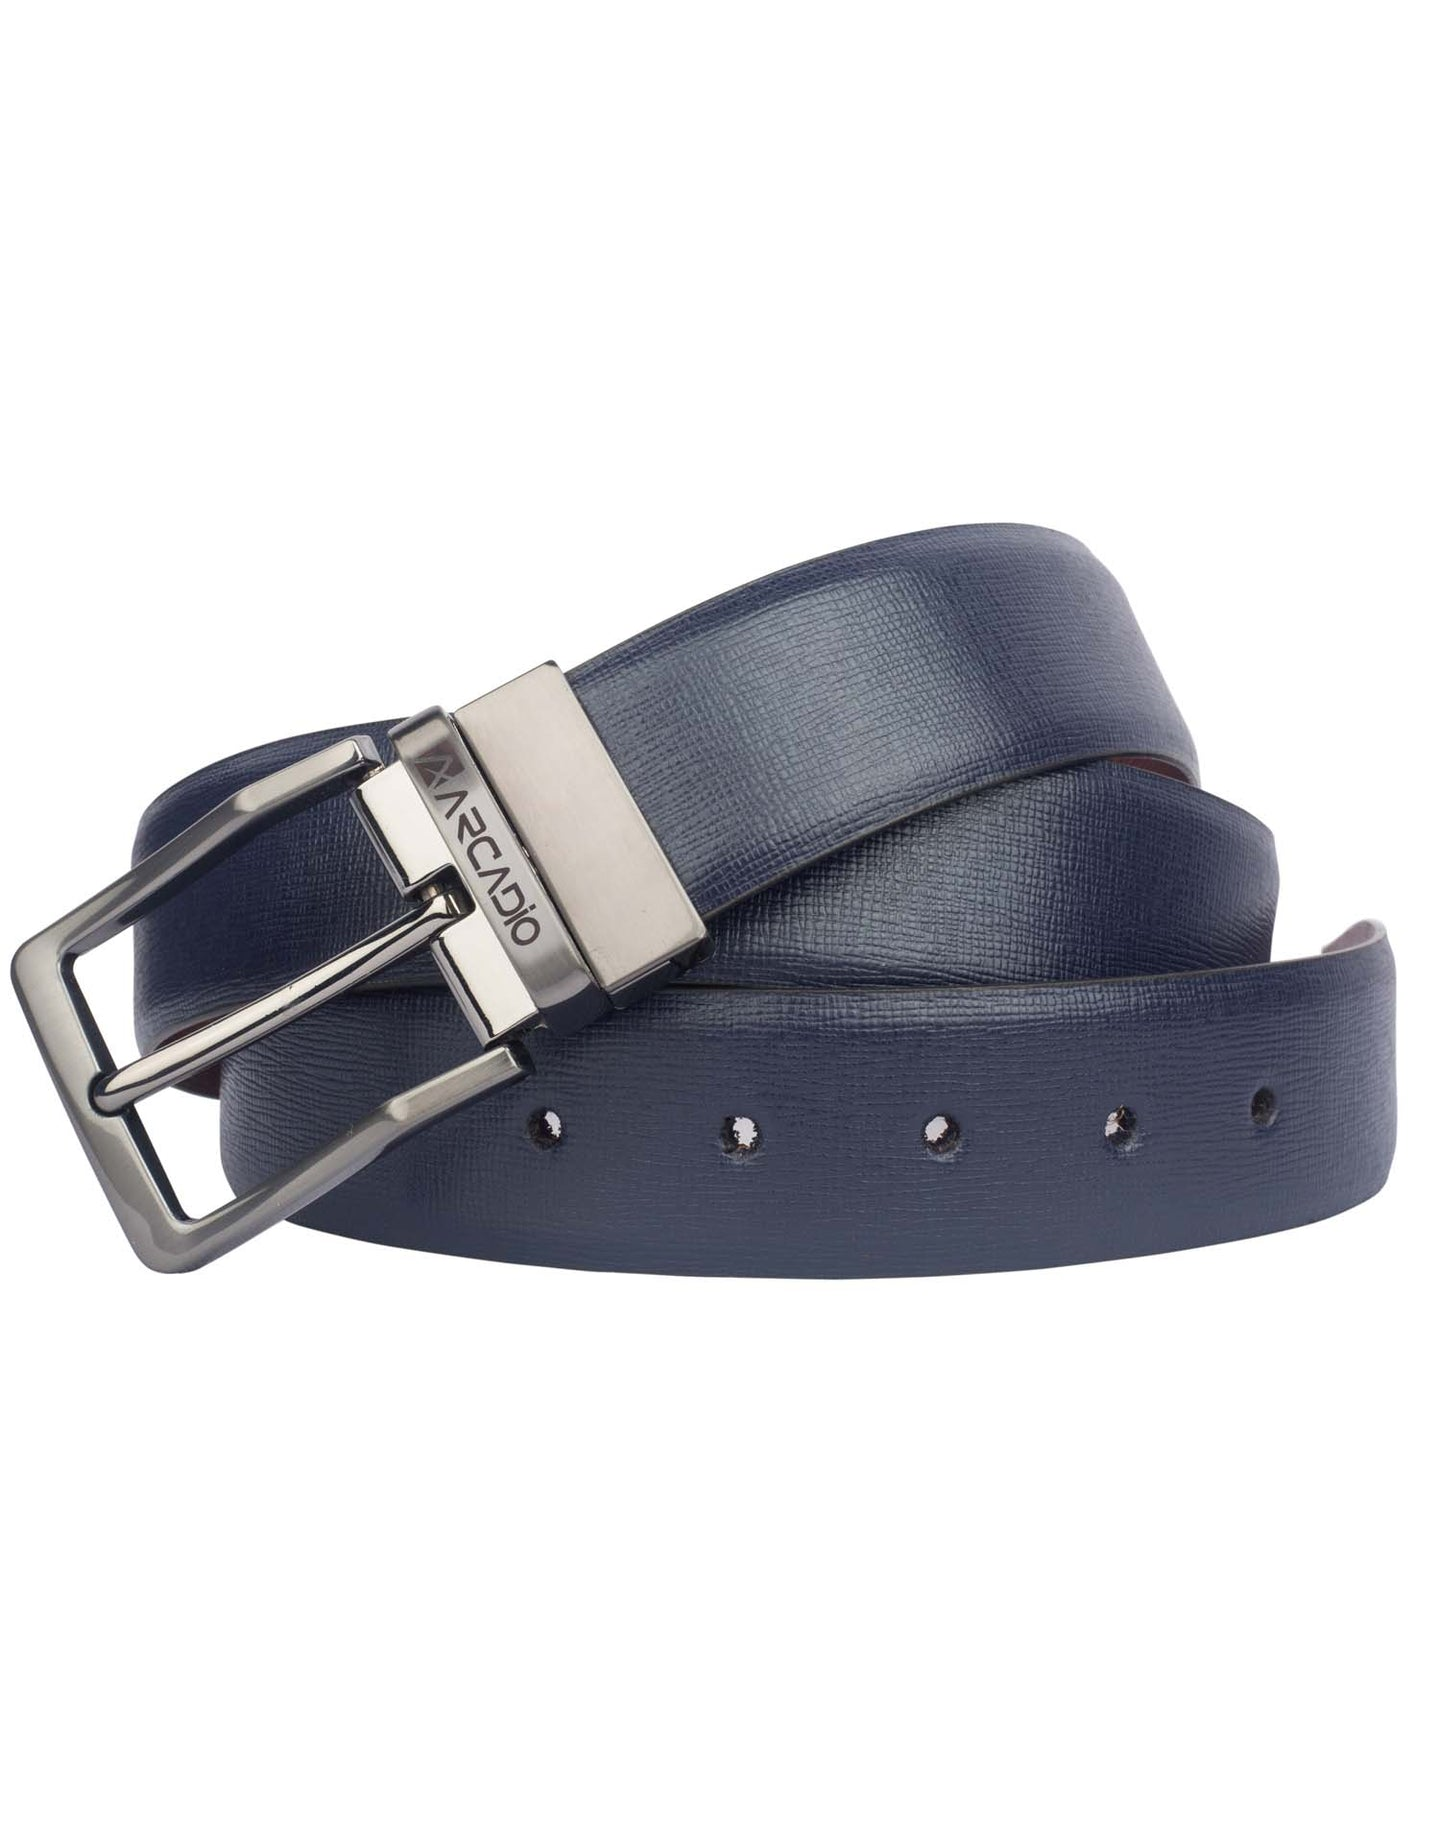 PURE CLASS - Classy Formal Reversable Leather Belt - ARB1010RV